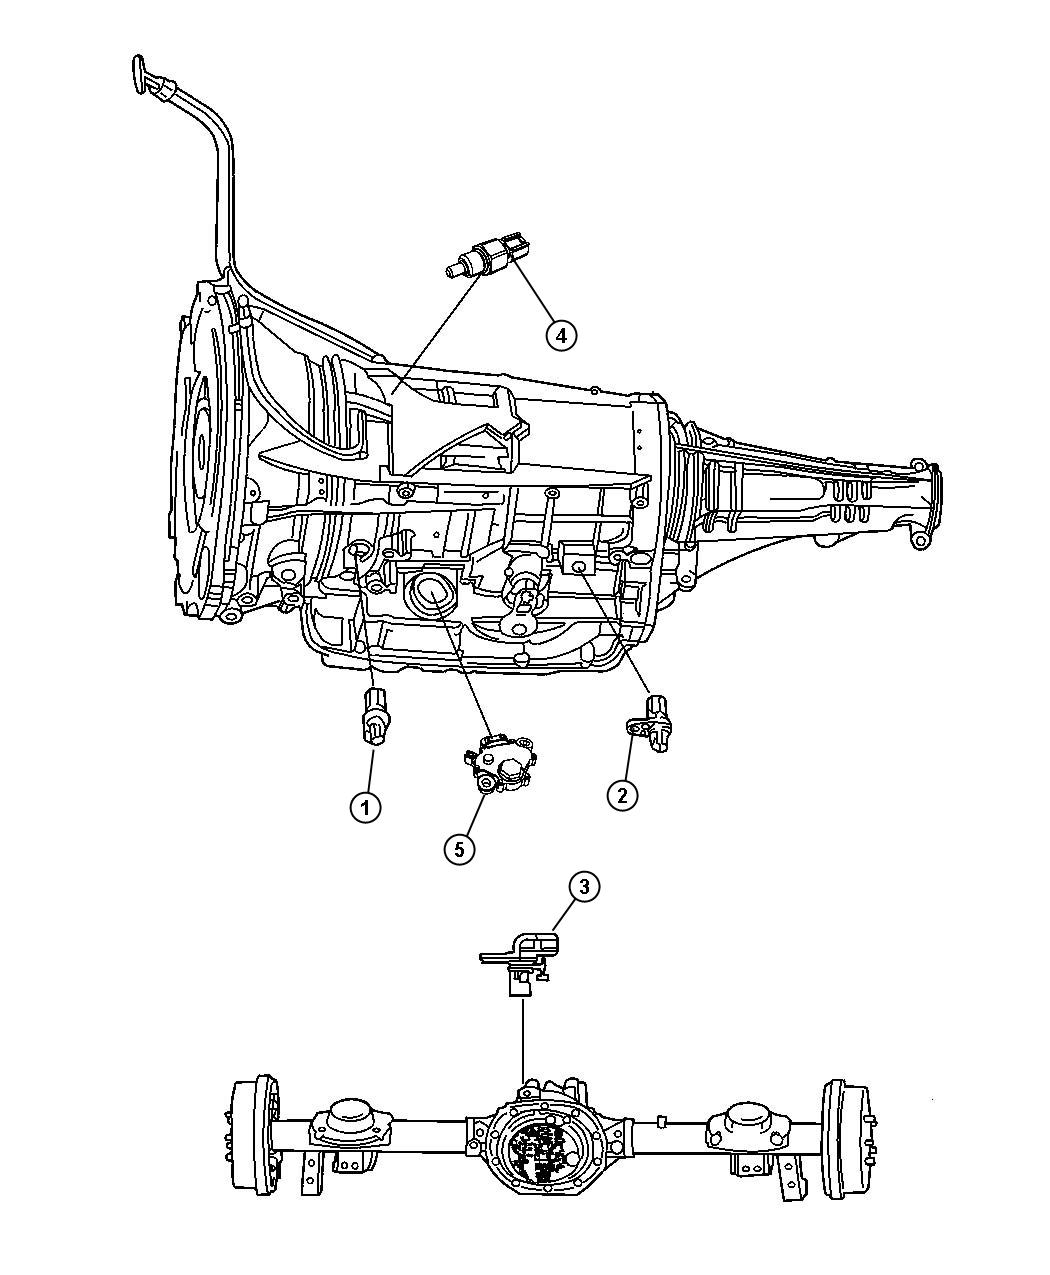 2008 Dodge Charger Wiring Diagram from www.factorychryslerparts.com